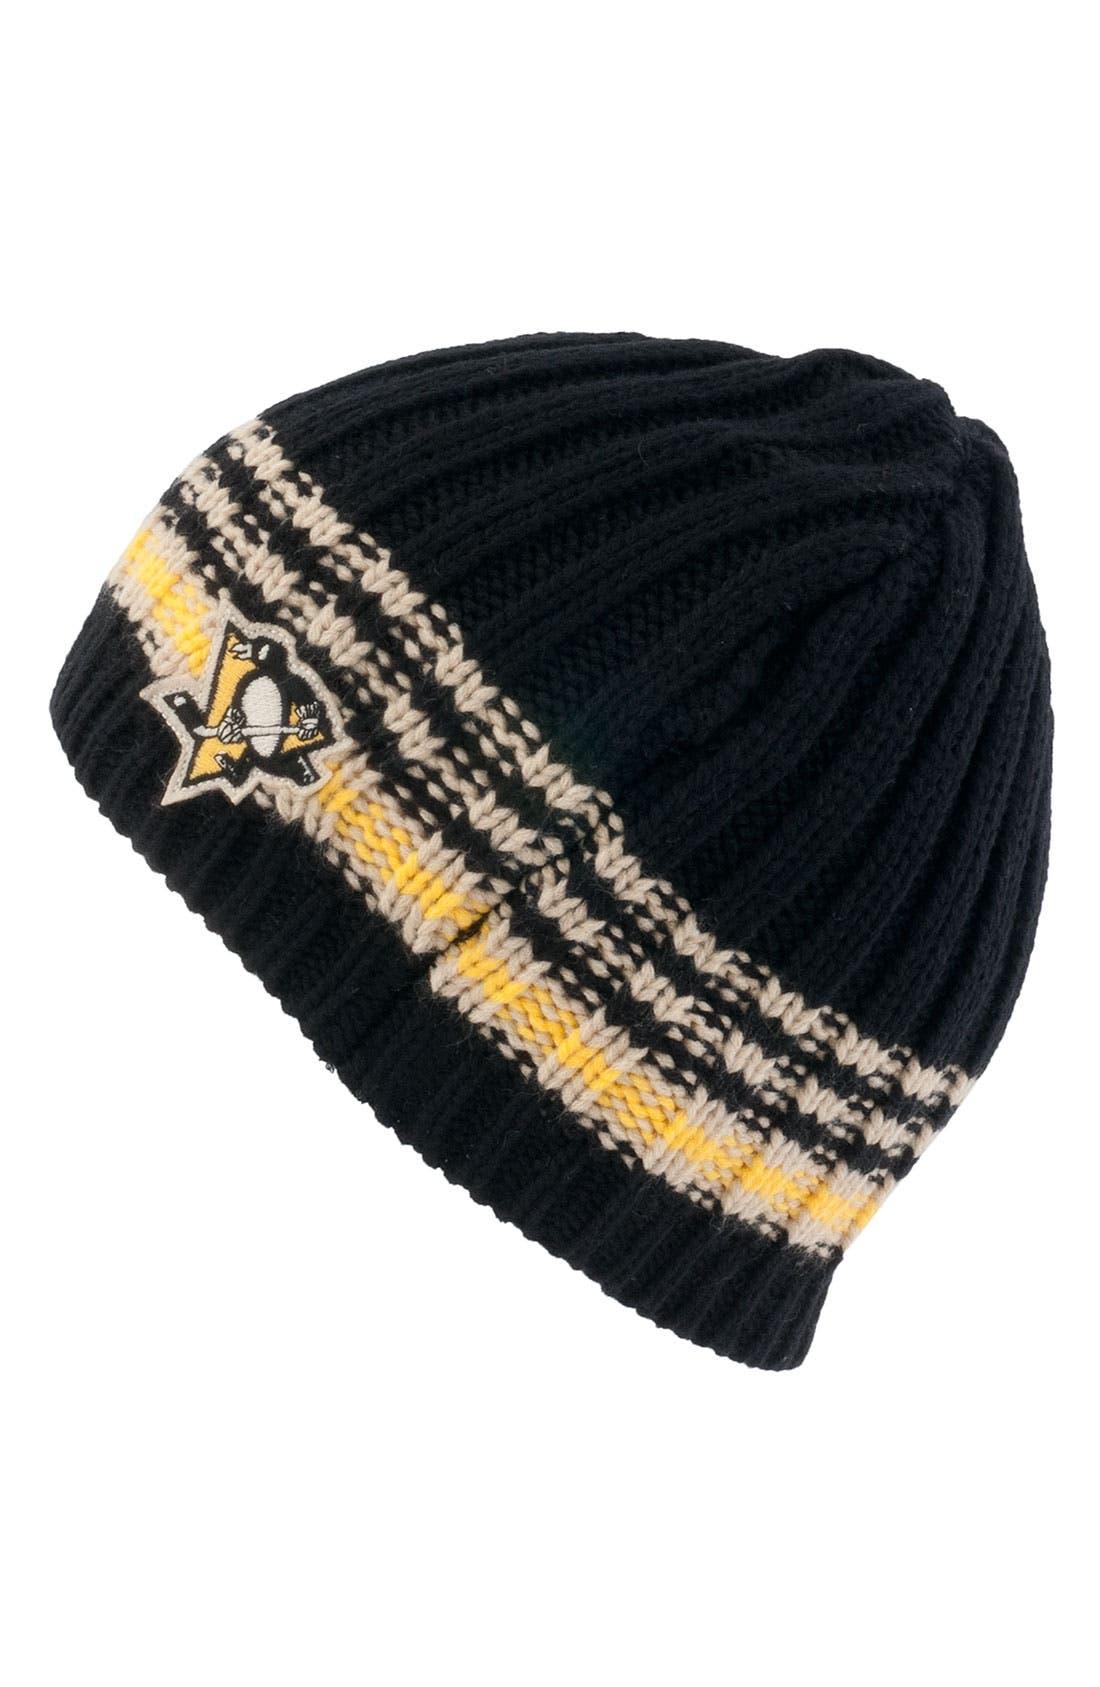 Main Image - American Needle 'Pittsuburgh Penguins - Targhee' Knit Hat